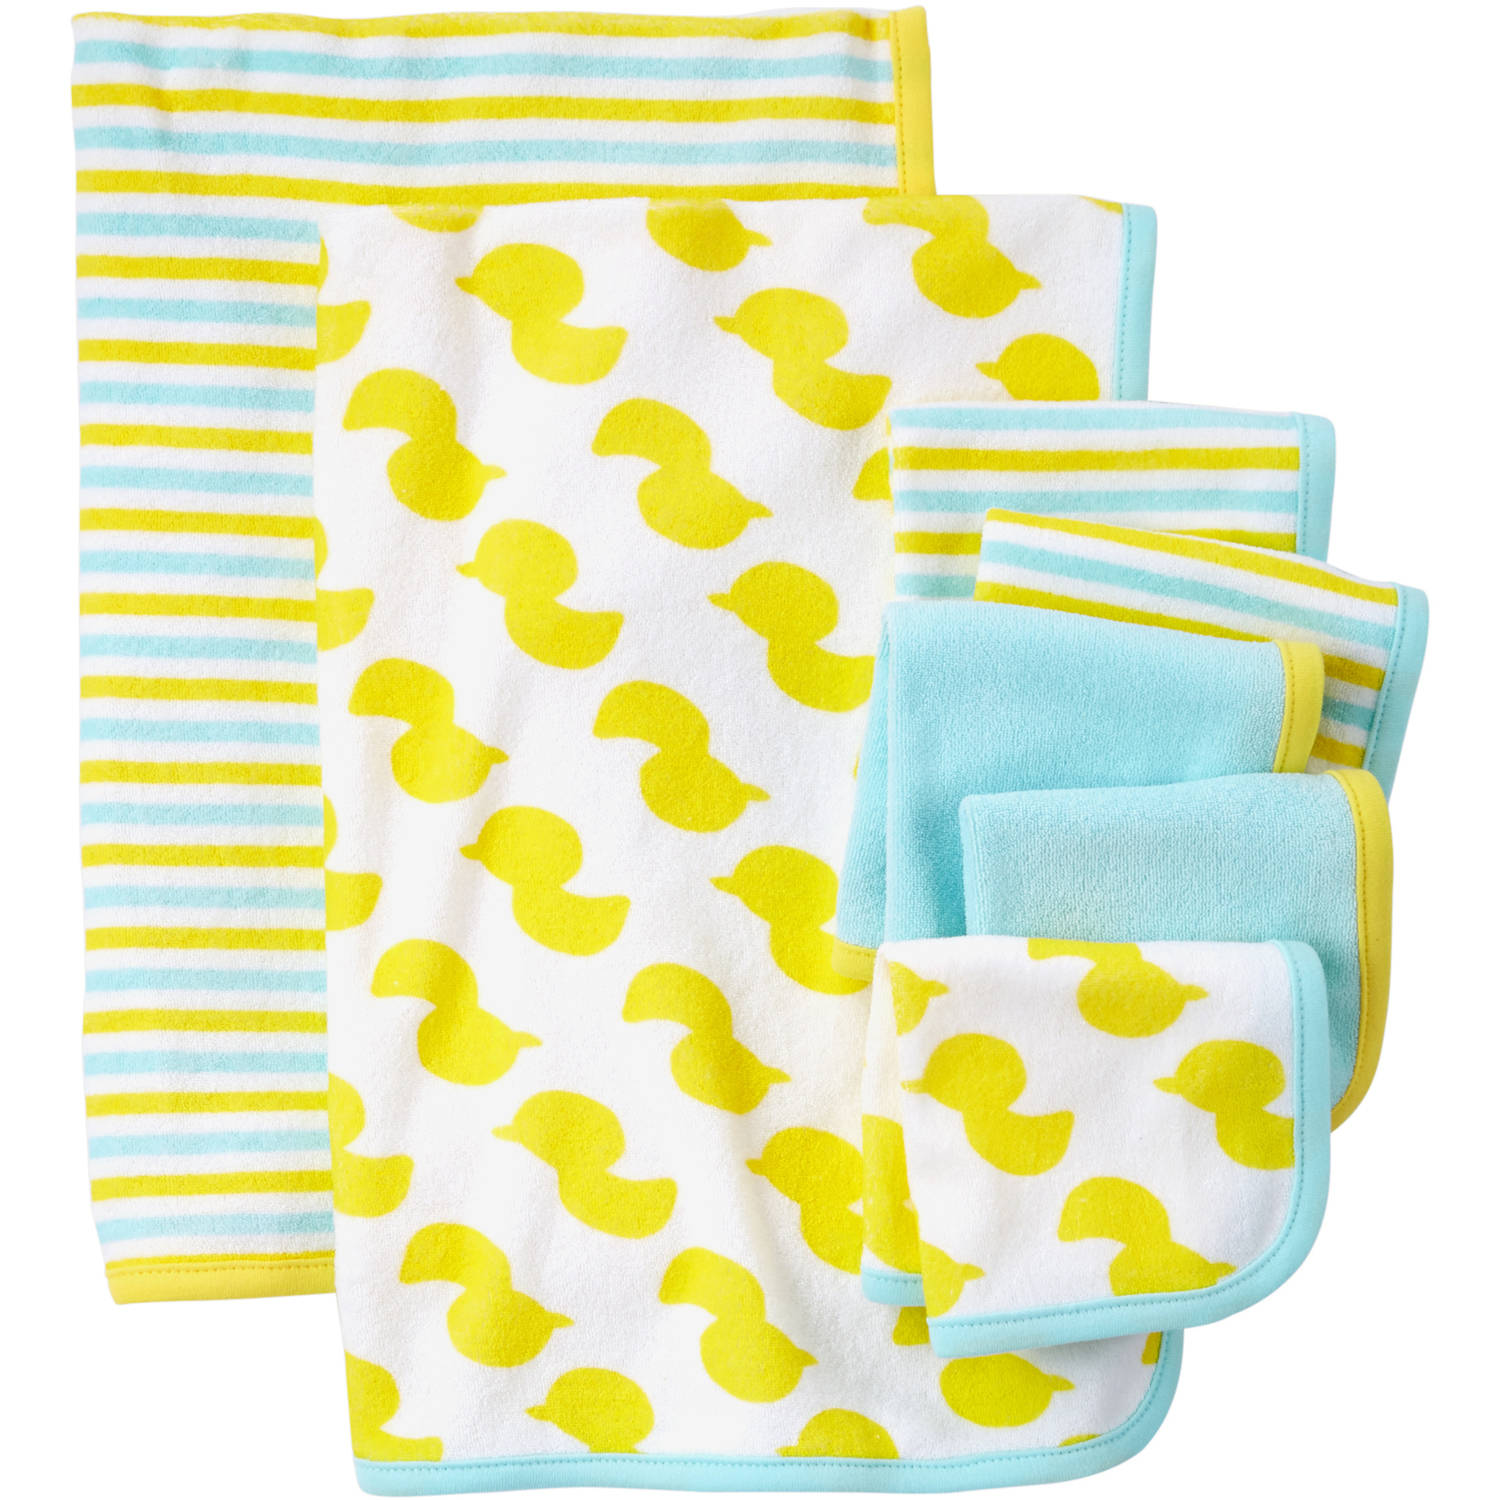 Child Of Mine Made By Carter's Newborn Baby Washcloth And Towel Set, 7 Pack